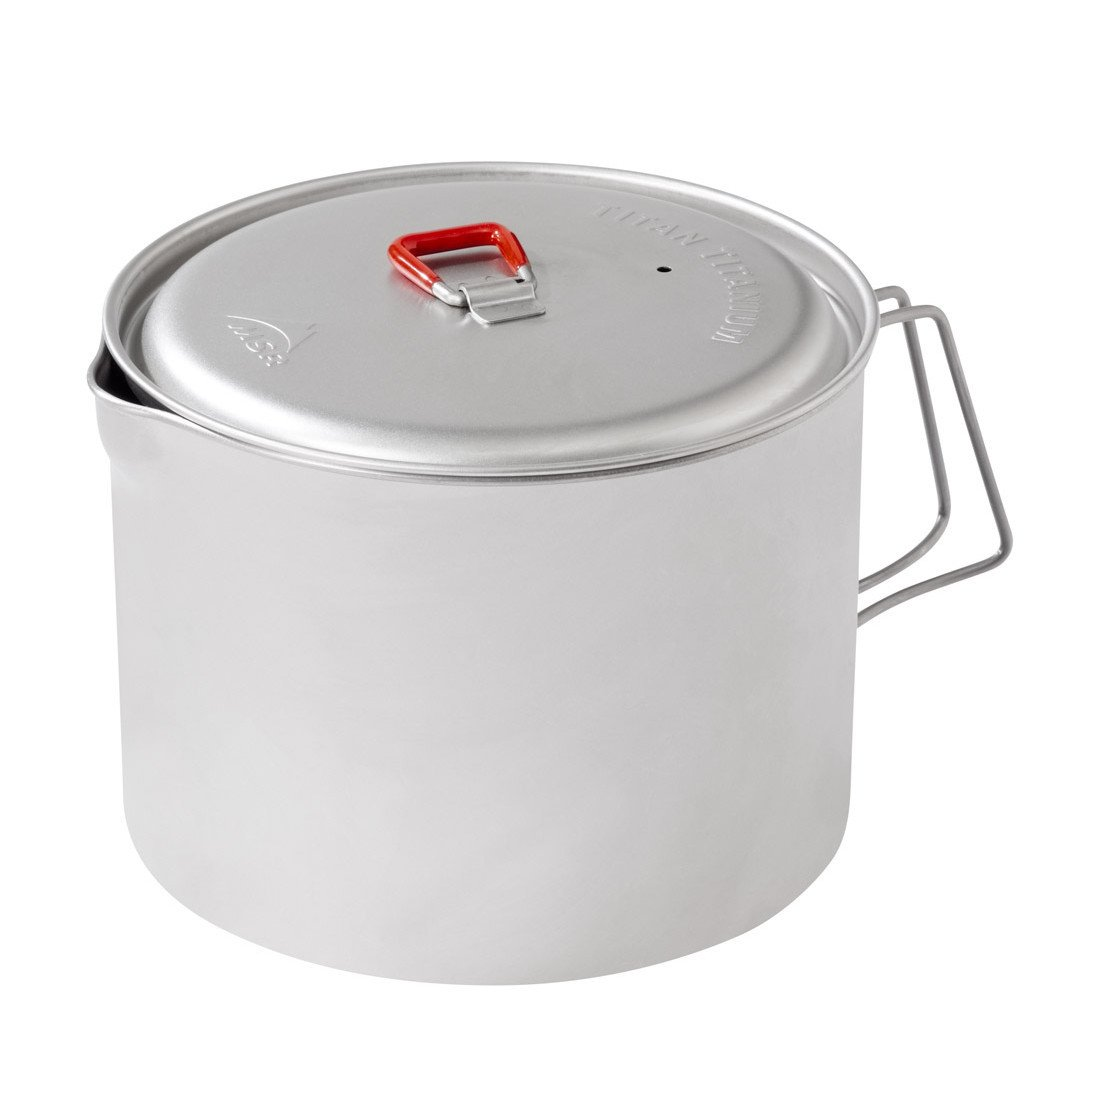 MSR Big Titan Kettle, camping cookware in silver colour